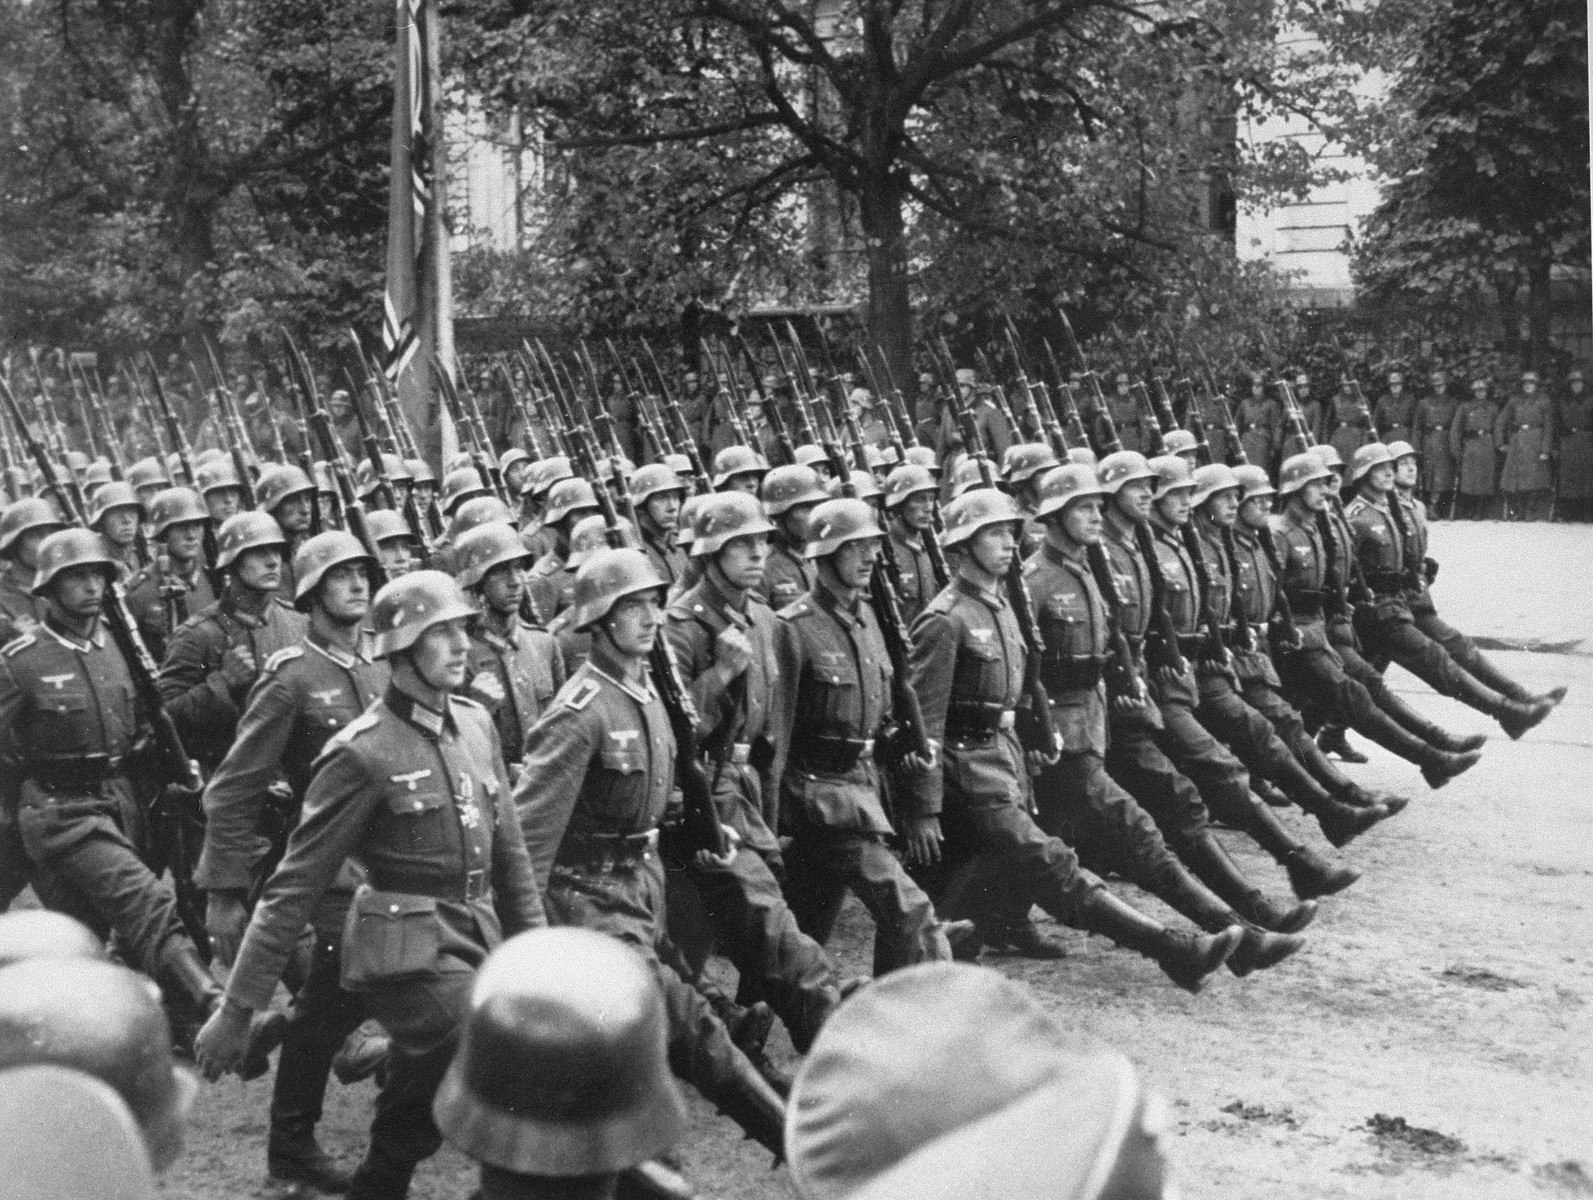 German soldiers parade through Warsaw to celebrate the conquest of Poland.